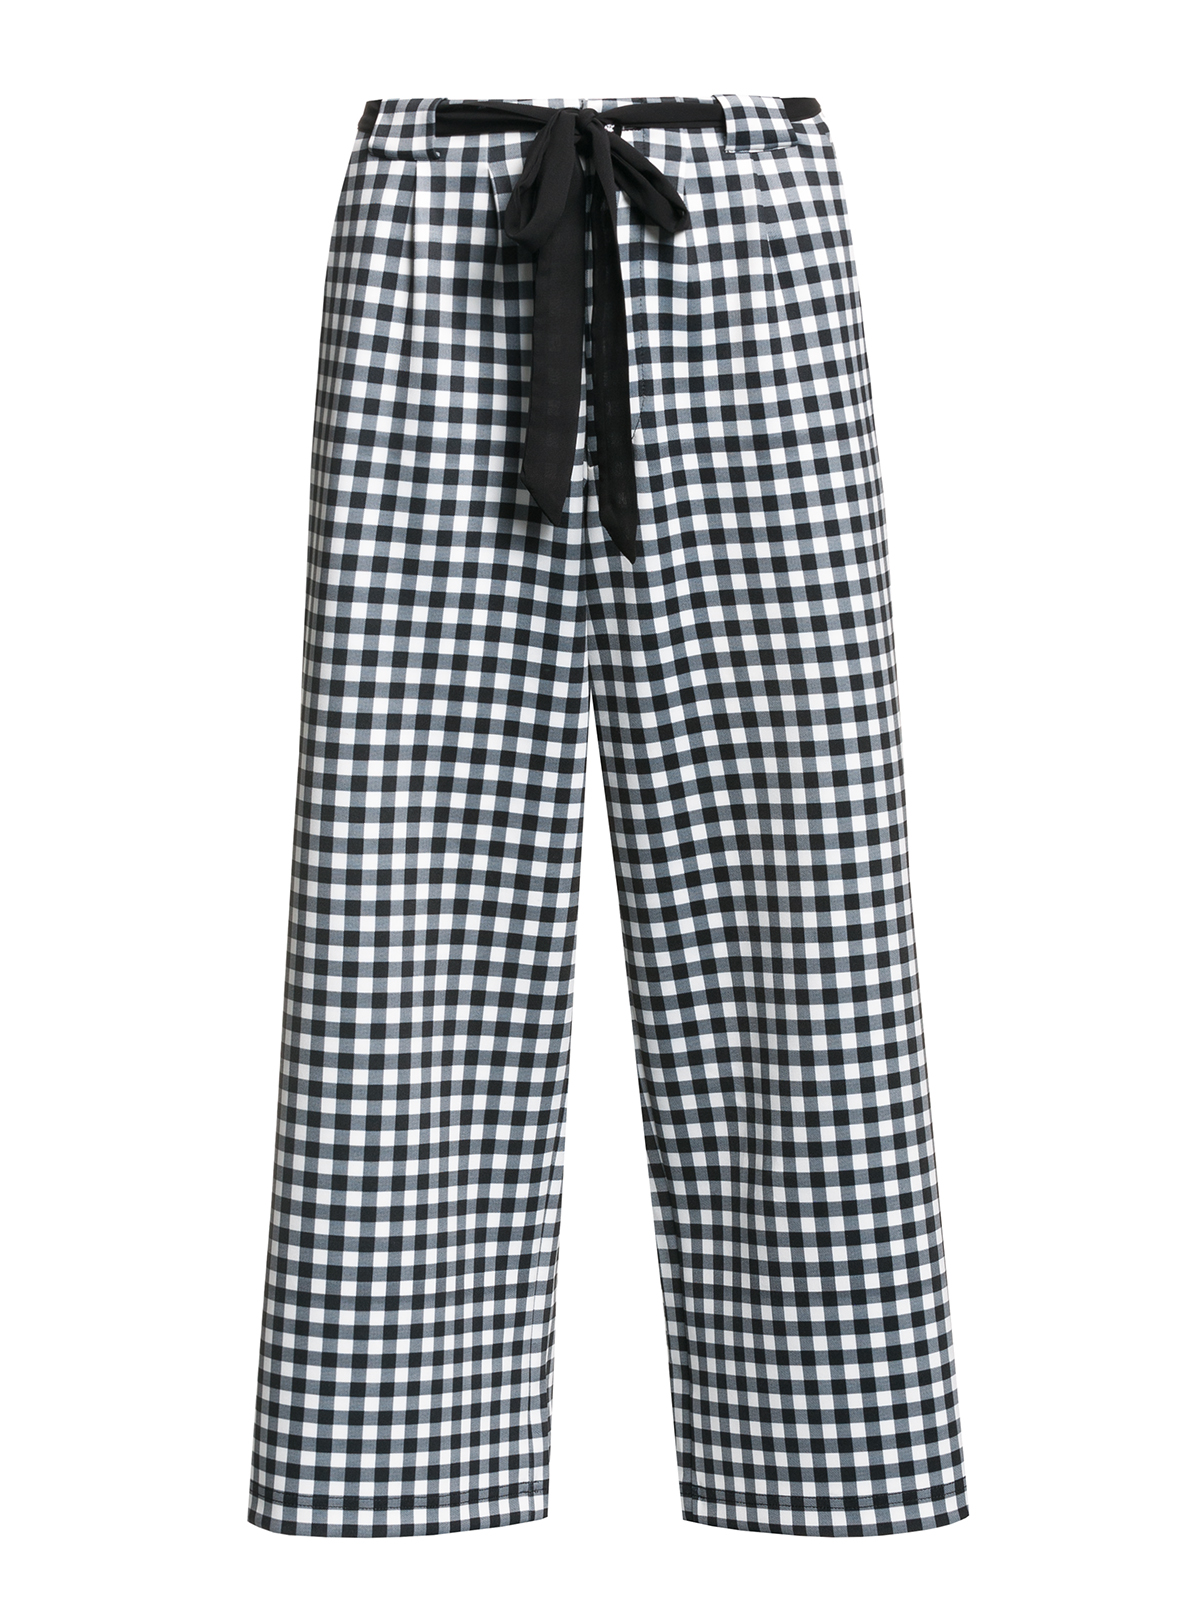 Hosen - Pussy Deluxe Plaid Cherries Damen Culotte – Größe M  - Onlineshop NAPO Shop